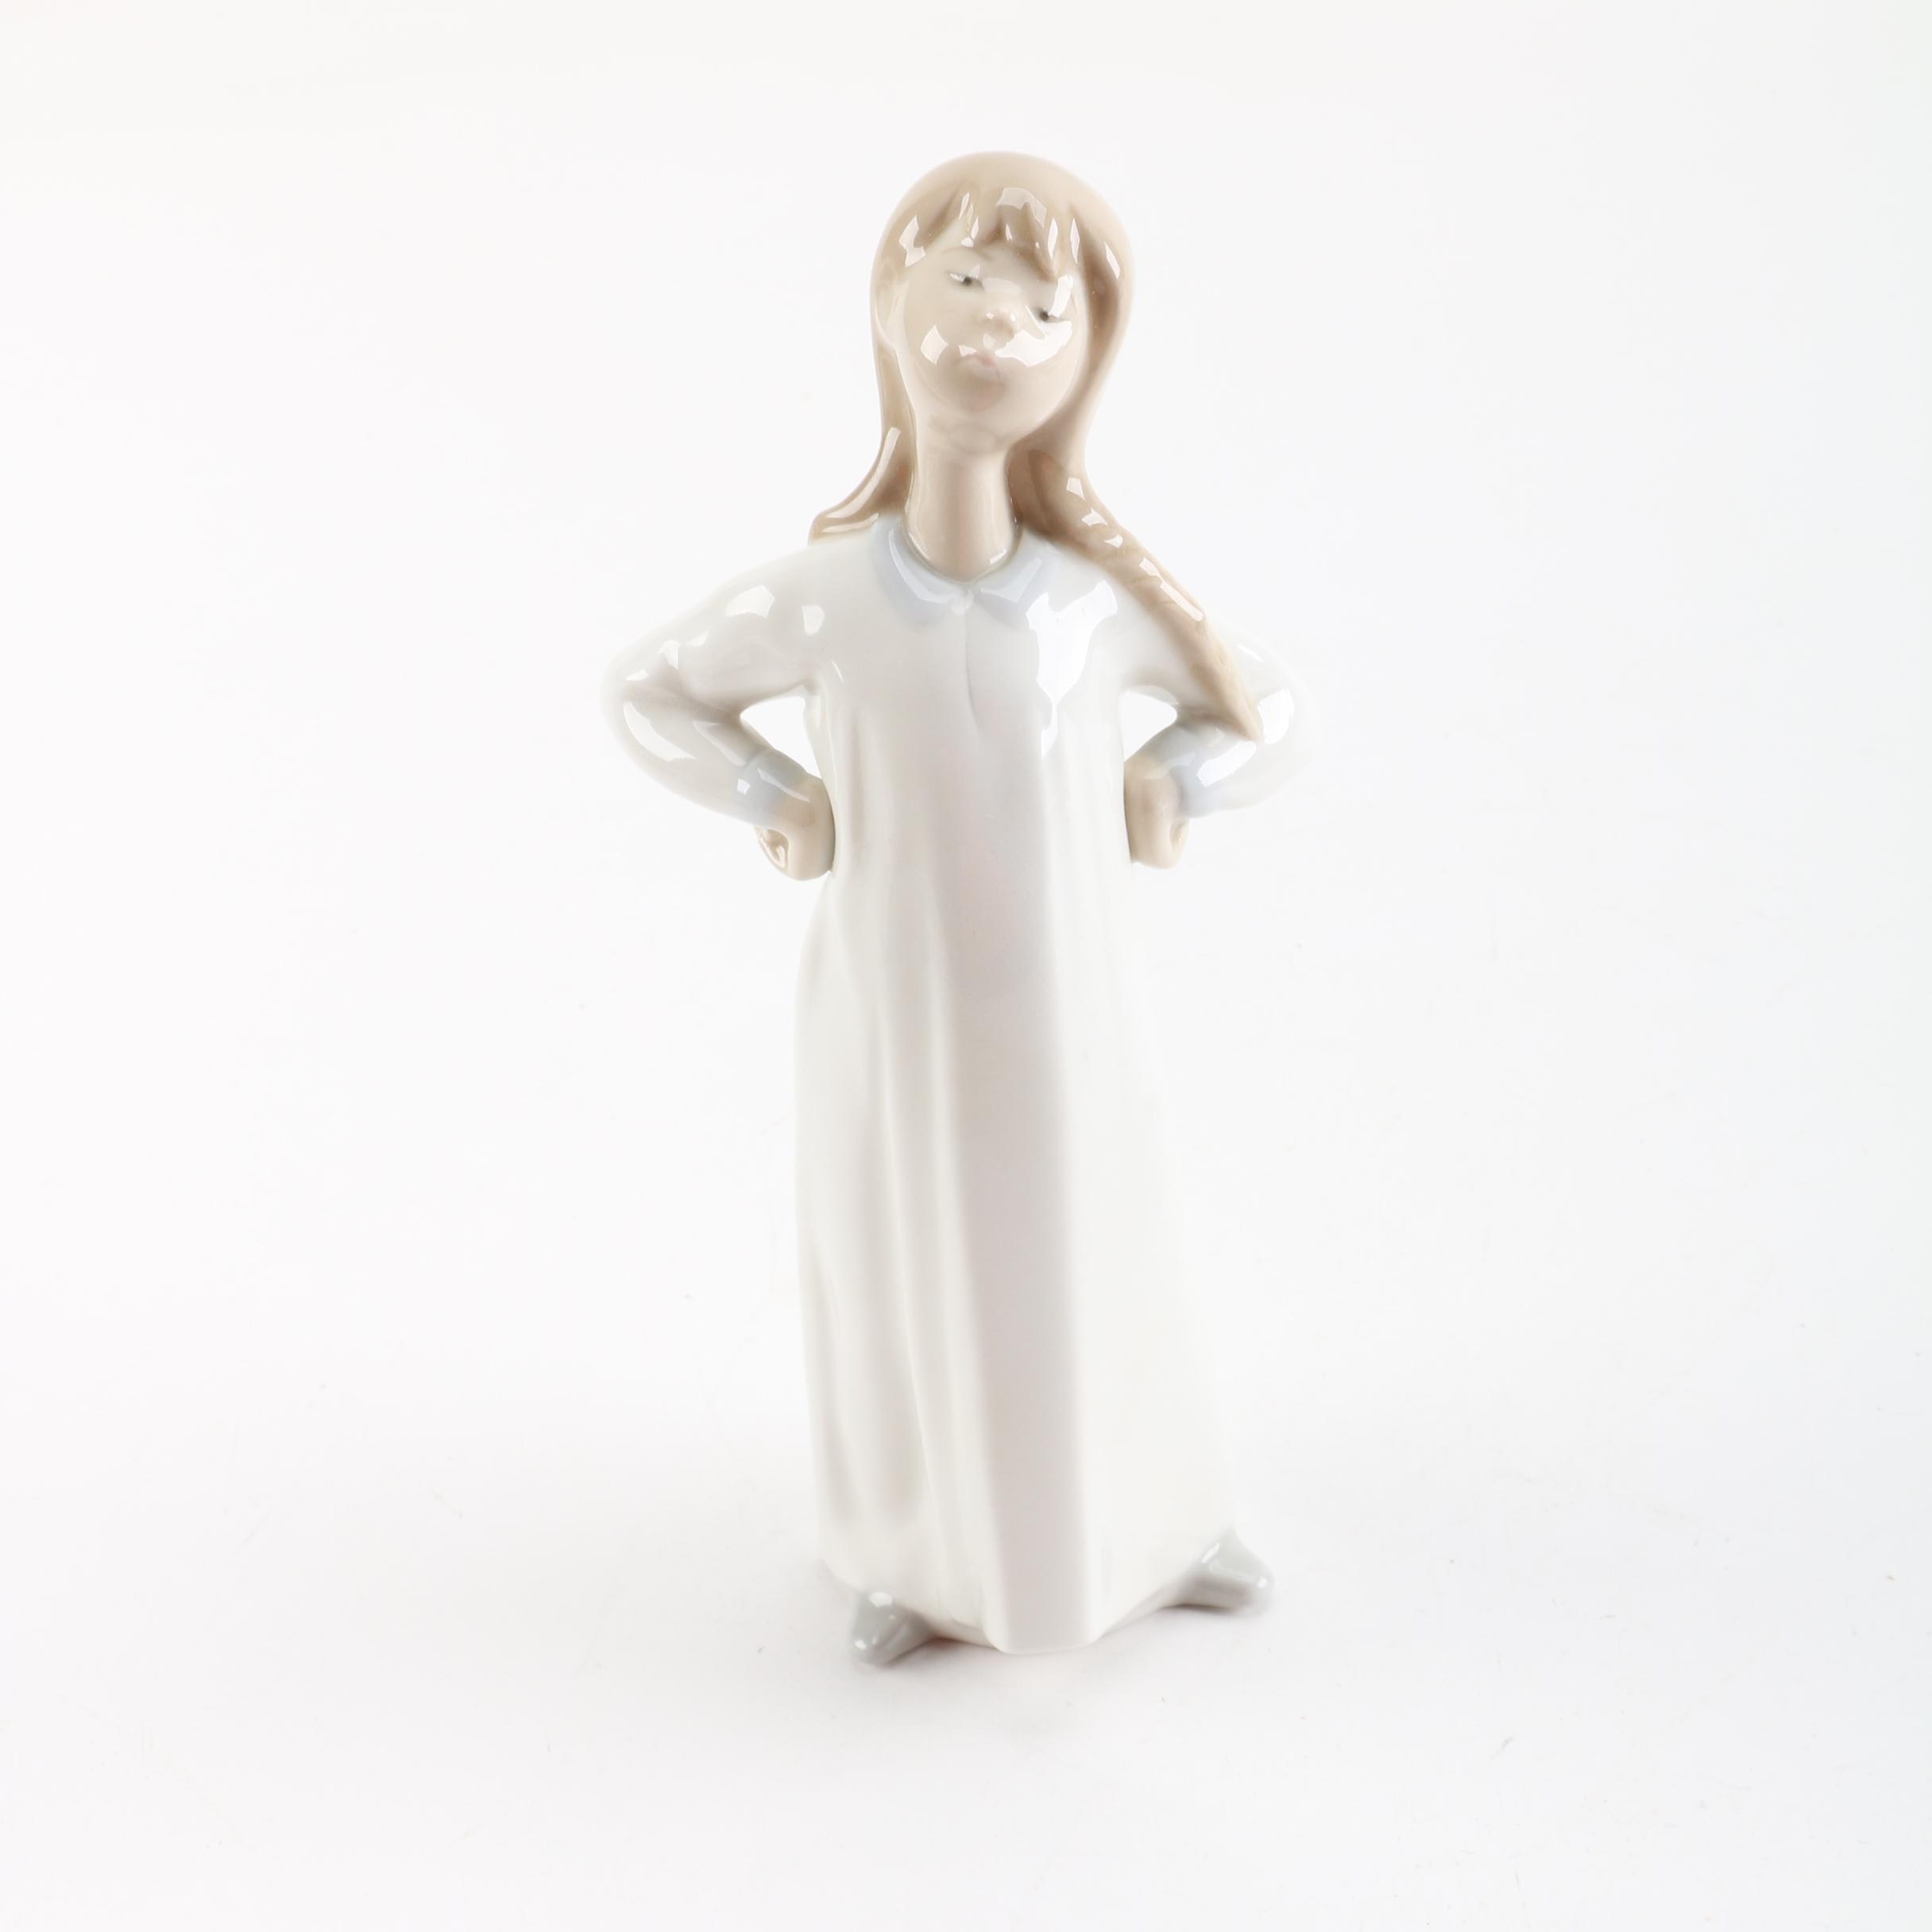 Lladró Porcelain Figurine of Girl with Hands Akimbo